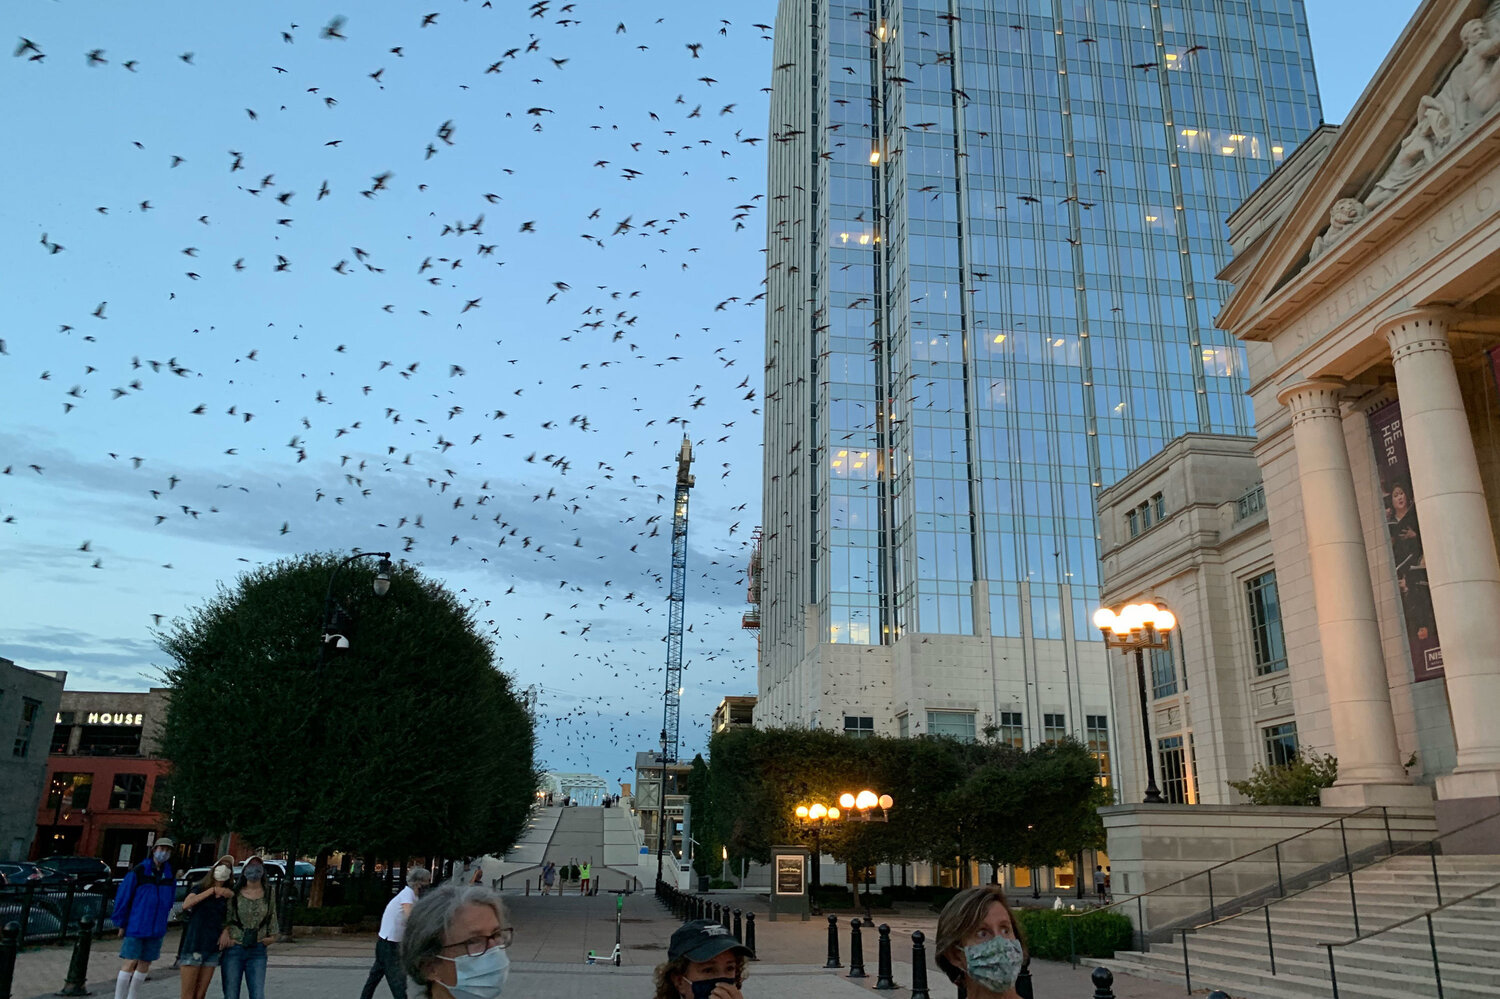 People have flocked to downtown Nashville, Tenn. the past few days to take in a rare sight: thousands of Purple Martins. The migratory birds, on their way south for the winter, rarely roost in urban areas. Blake Farmer/WPLN